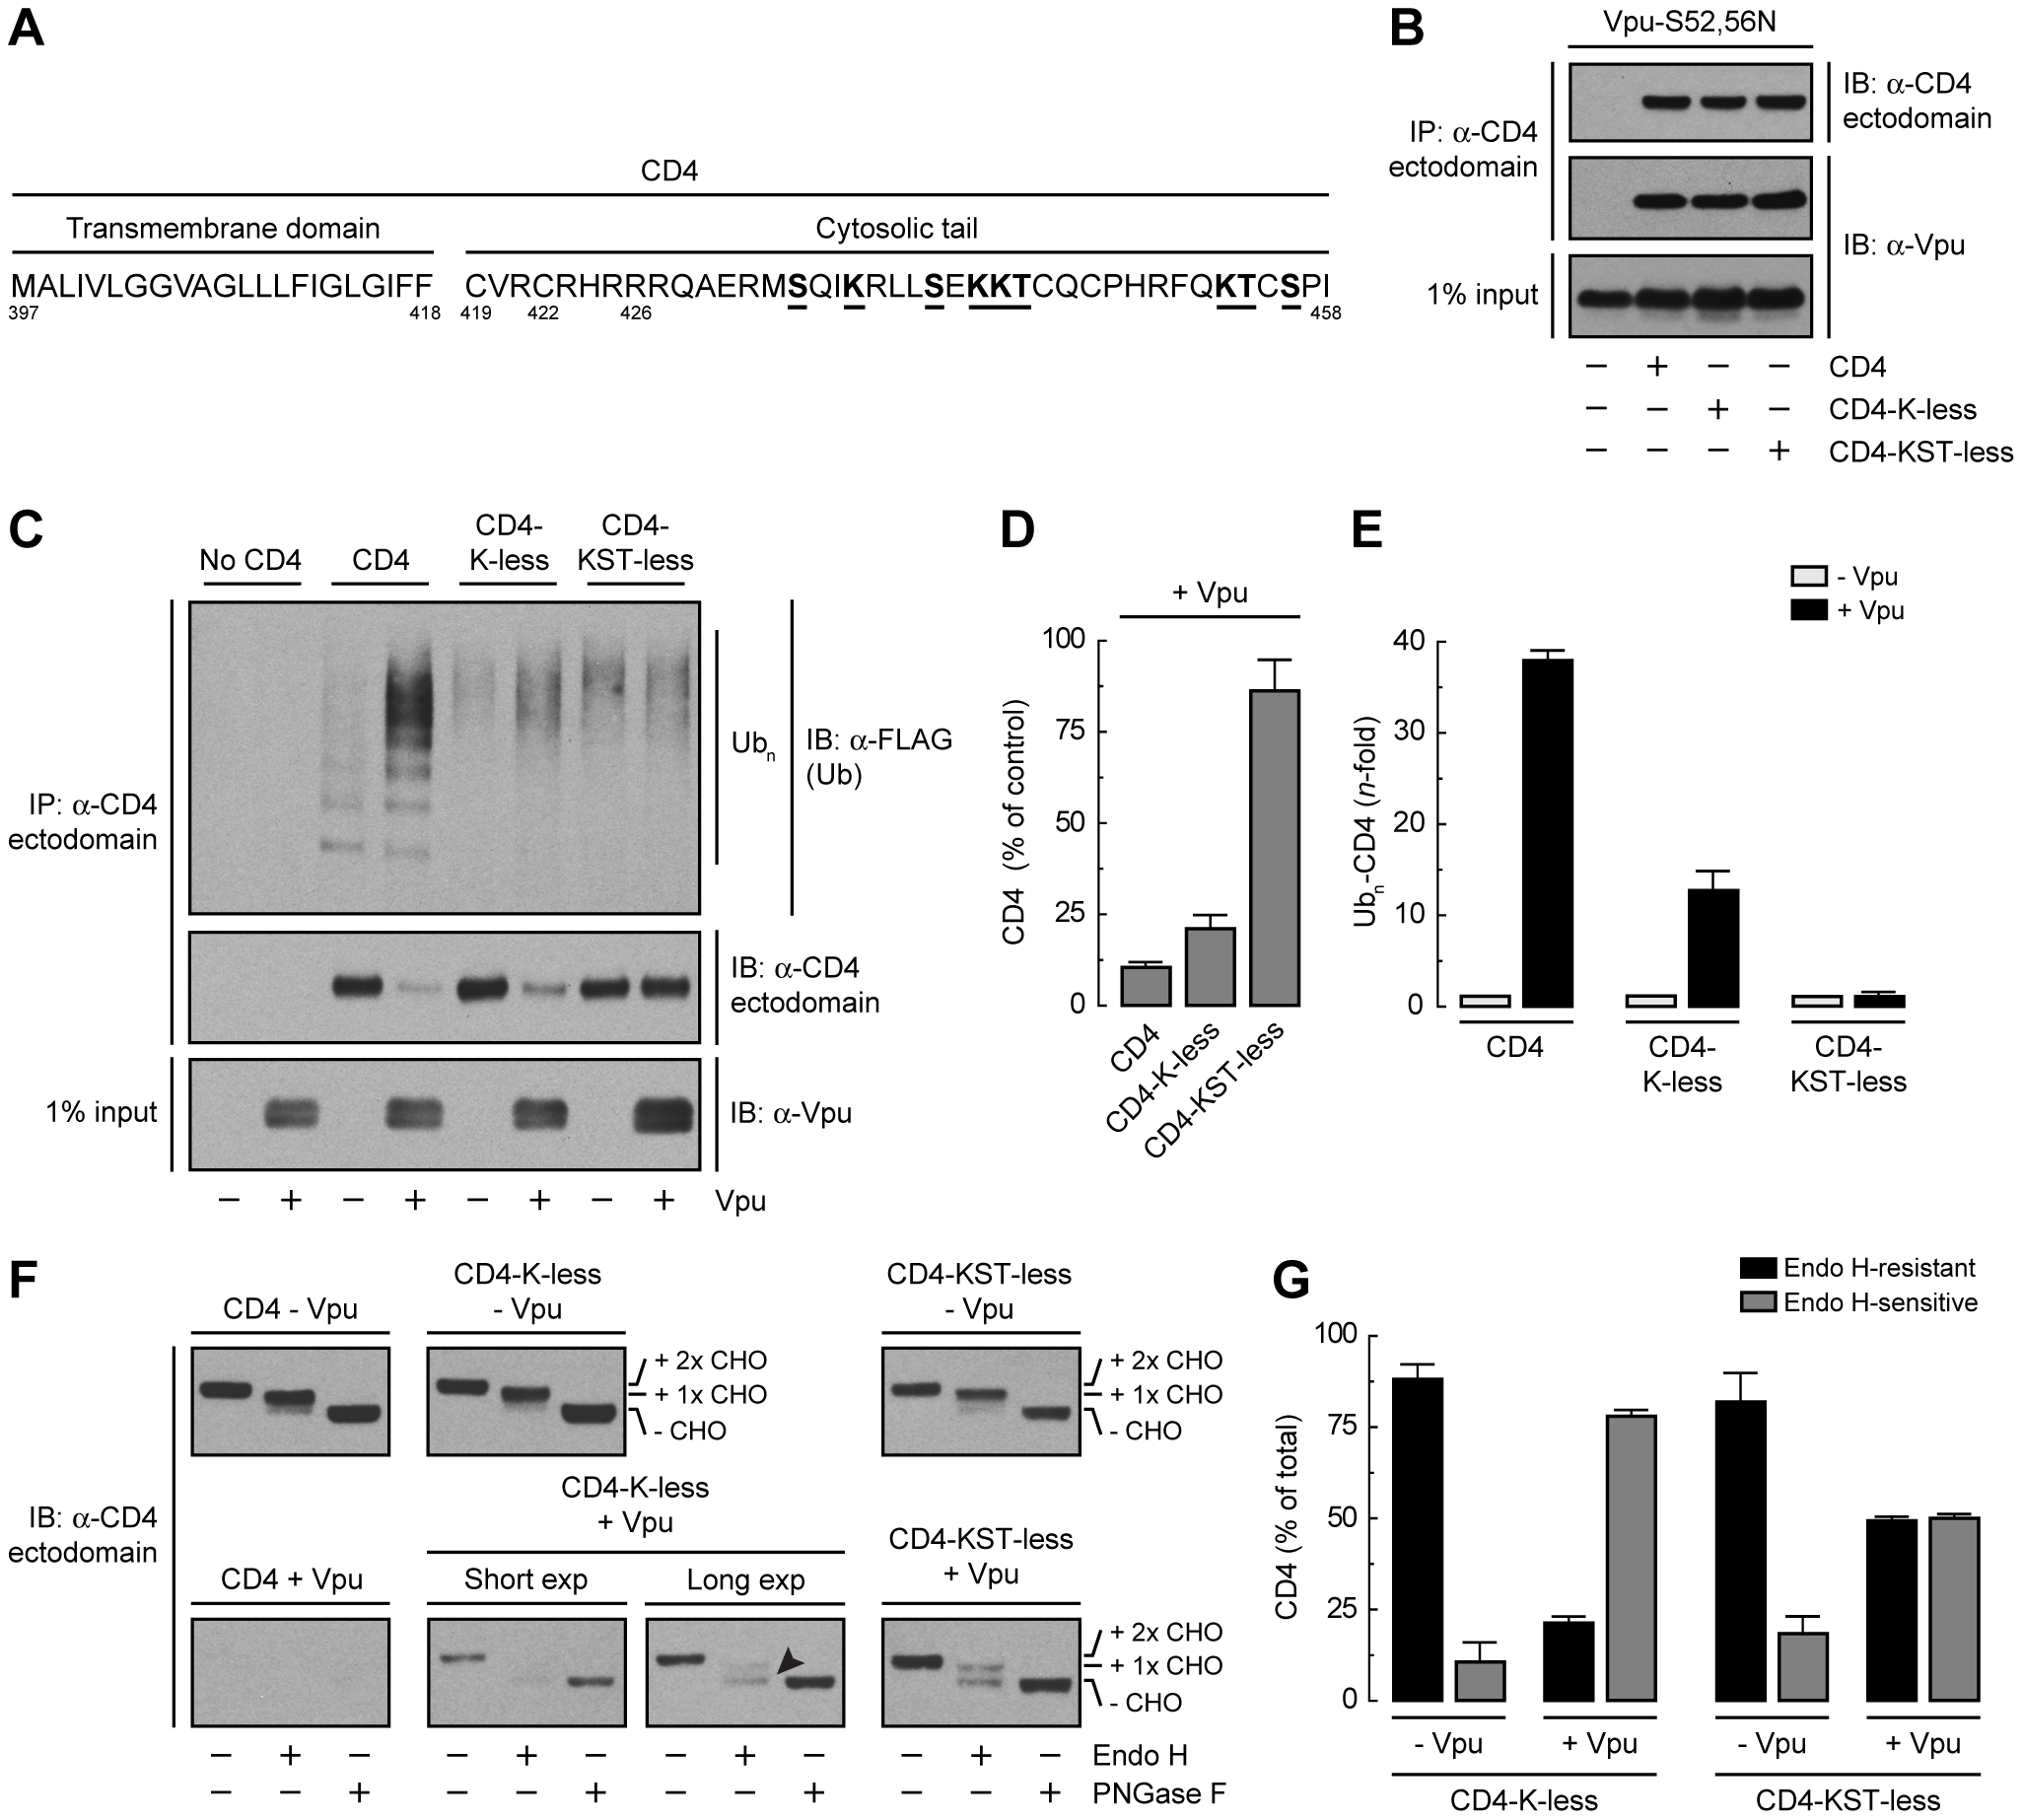 Requirement of lysine and serine/threonine residues in the cytosolic tail of CD4 for ubiquitination, degradation and ER retention.